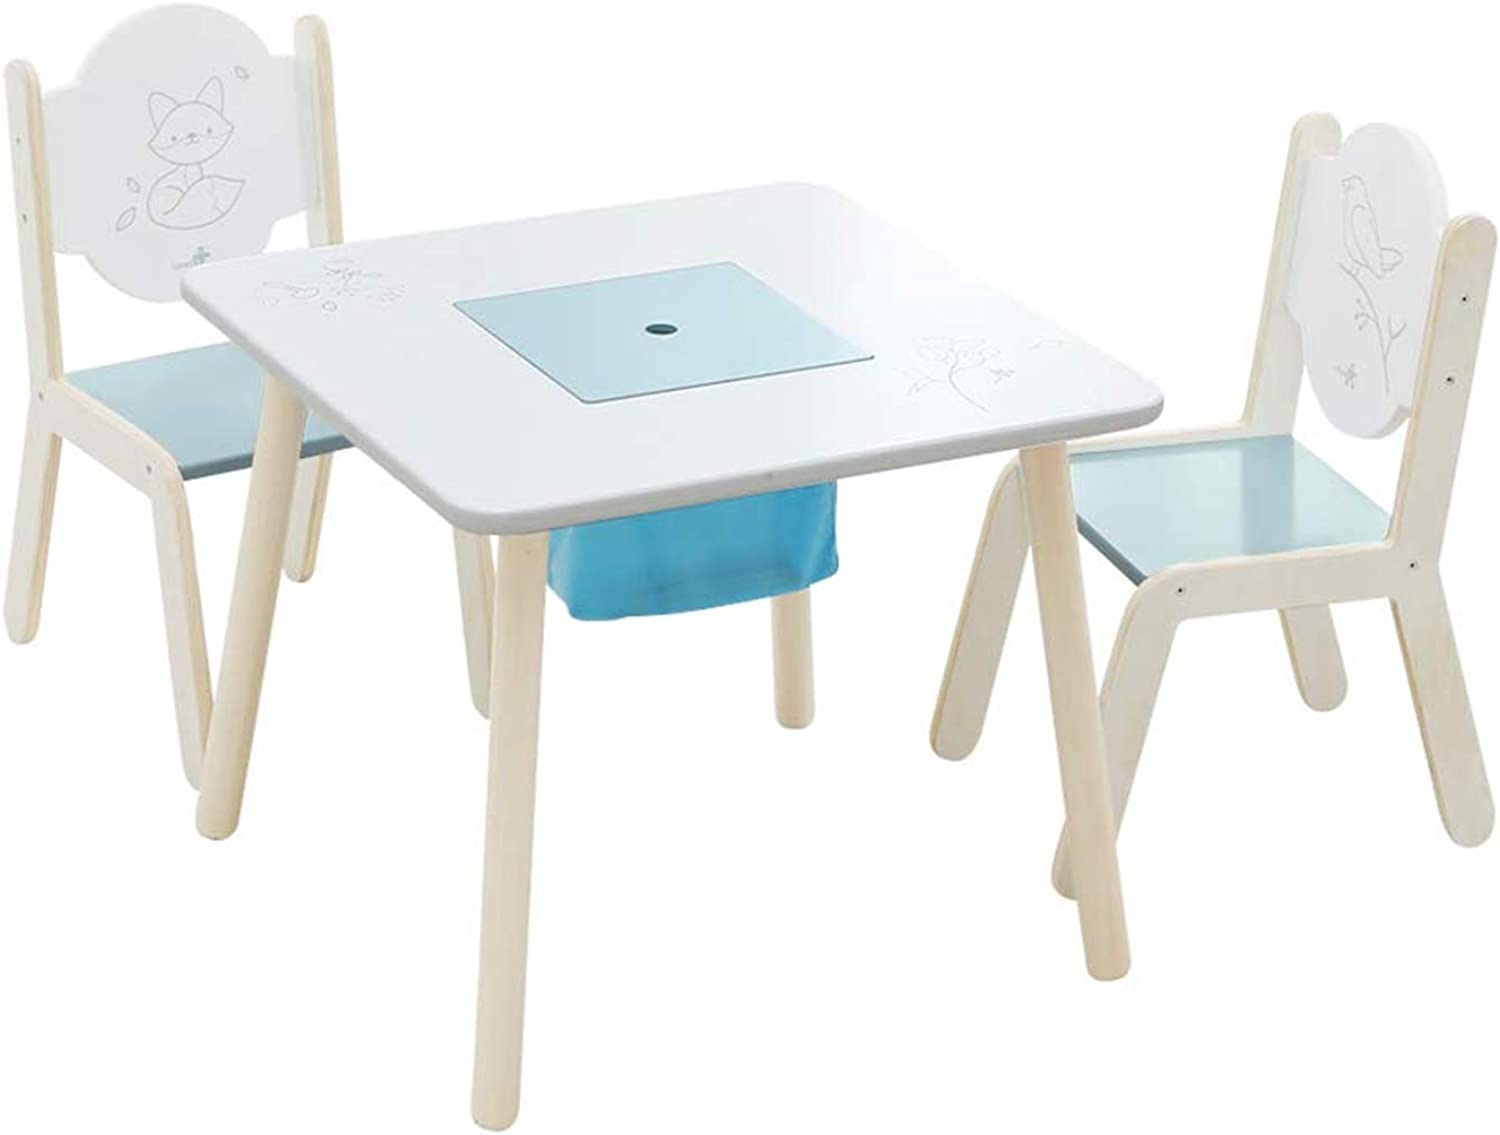 Wooden Activity Table Chair Set, Printed White Toddler Table ...